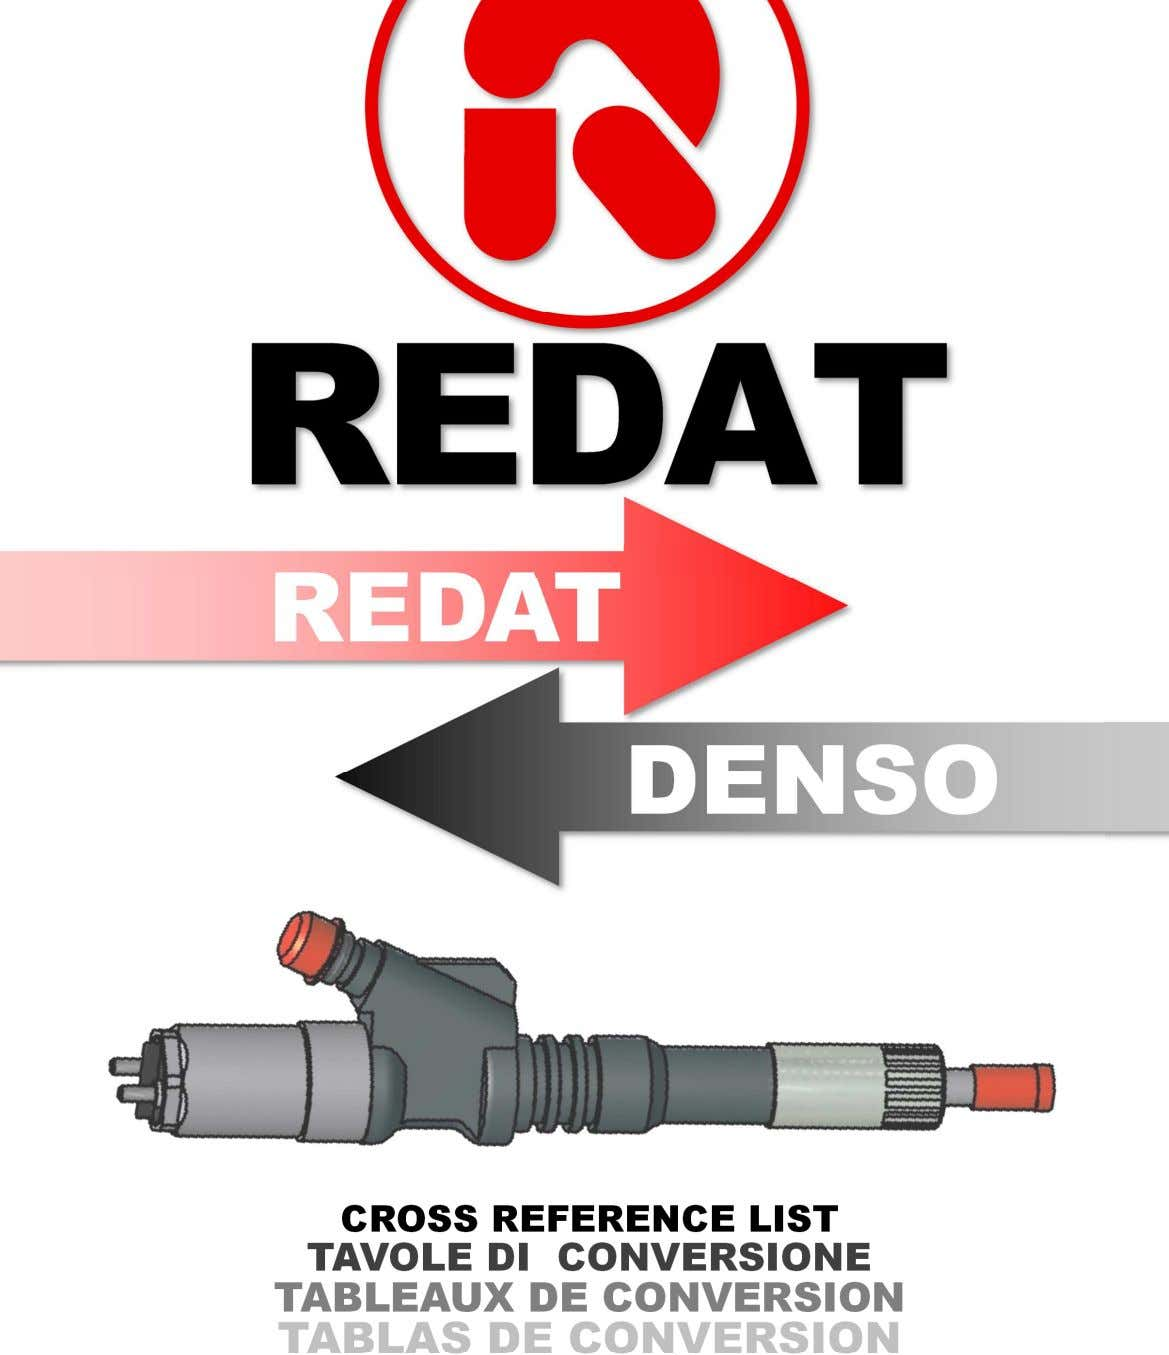 REDAT DENSO CROSS REFERENCE LIST TAVOLE DI CONVERSIONE TABLEAUX DE CONVERSION TABLAS DE CONVERSION